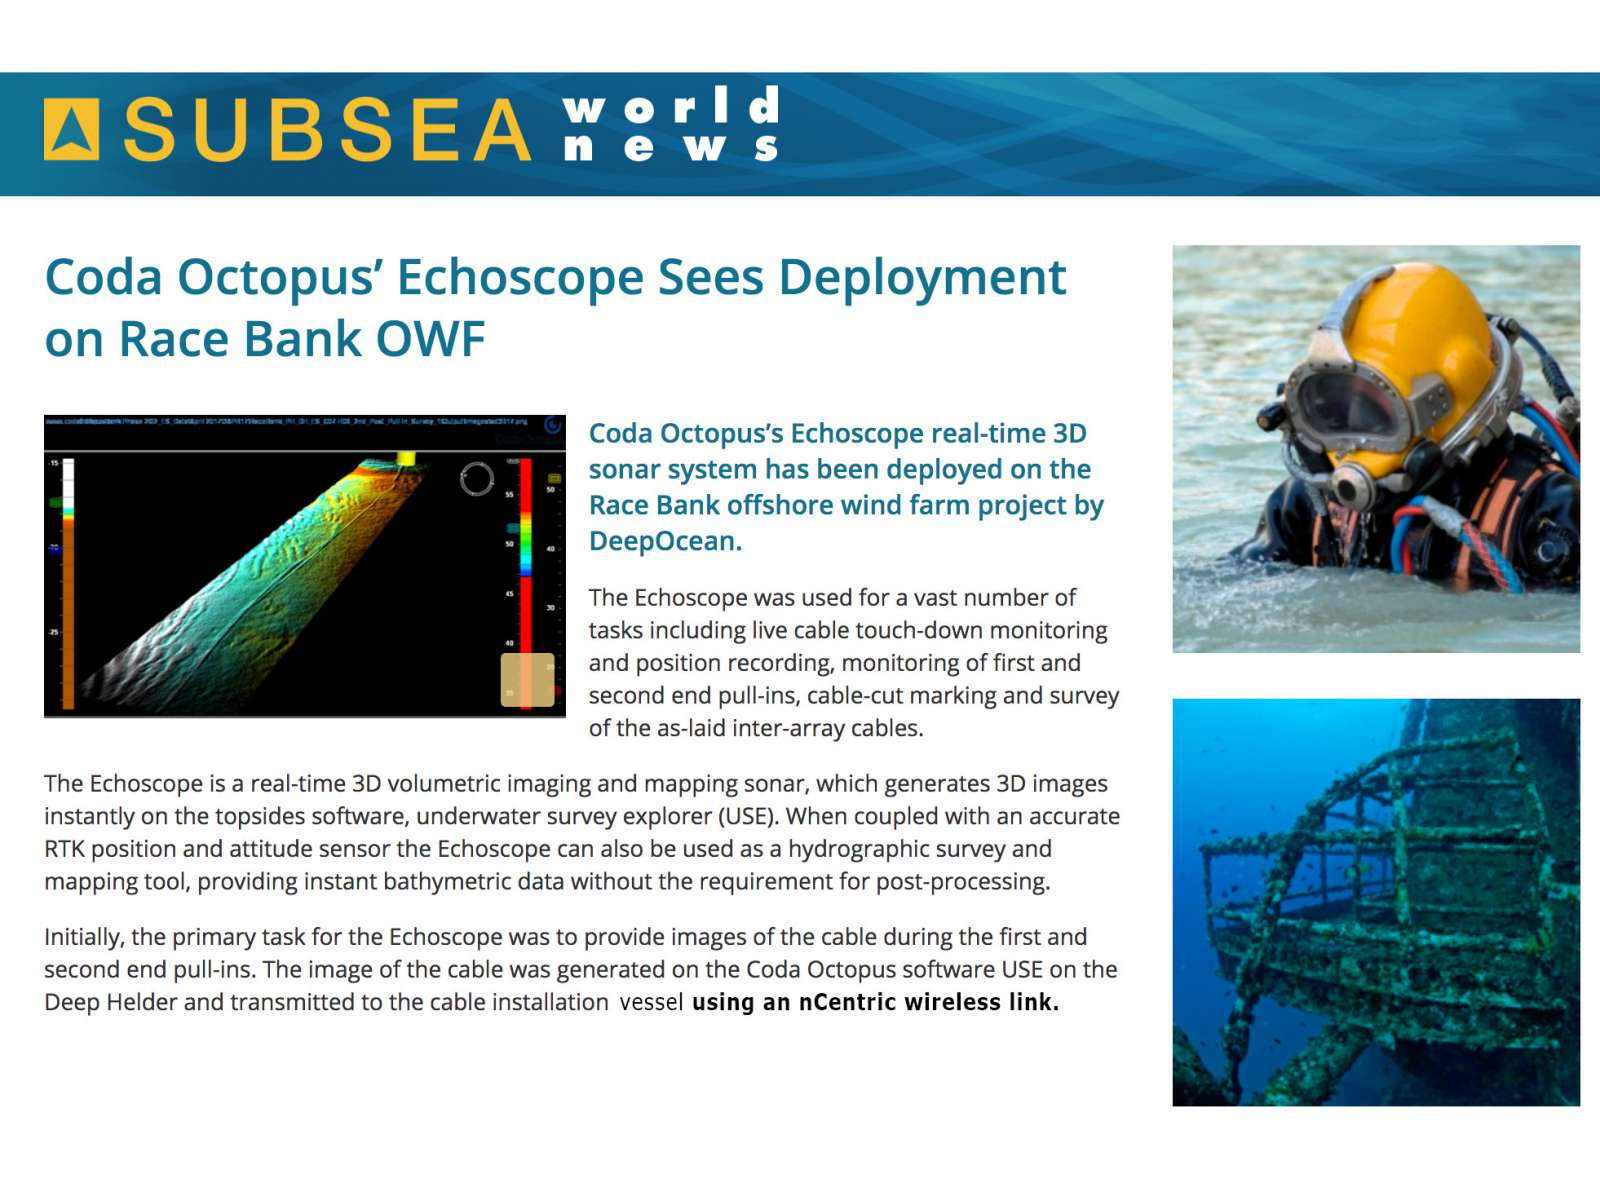 Subsea World News published an article about DeepOcean using nCentric nodes with Coda Octopus technology